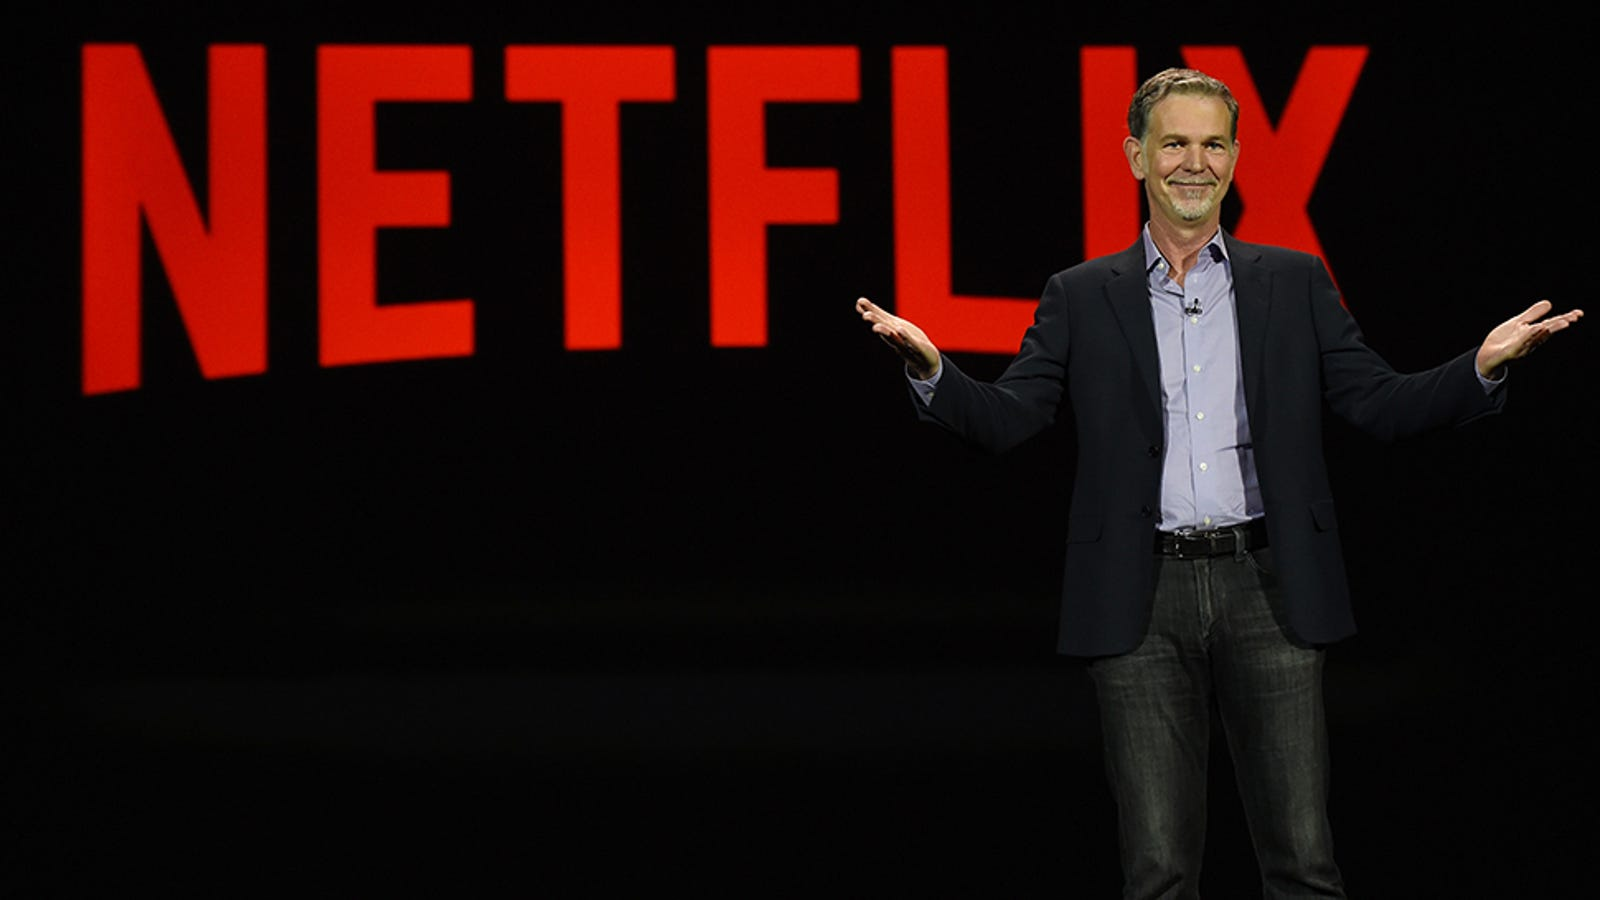 the competition may be catching up with netflix